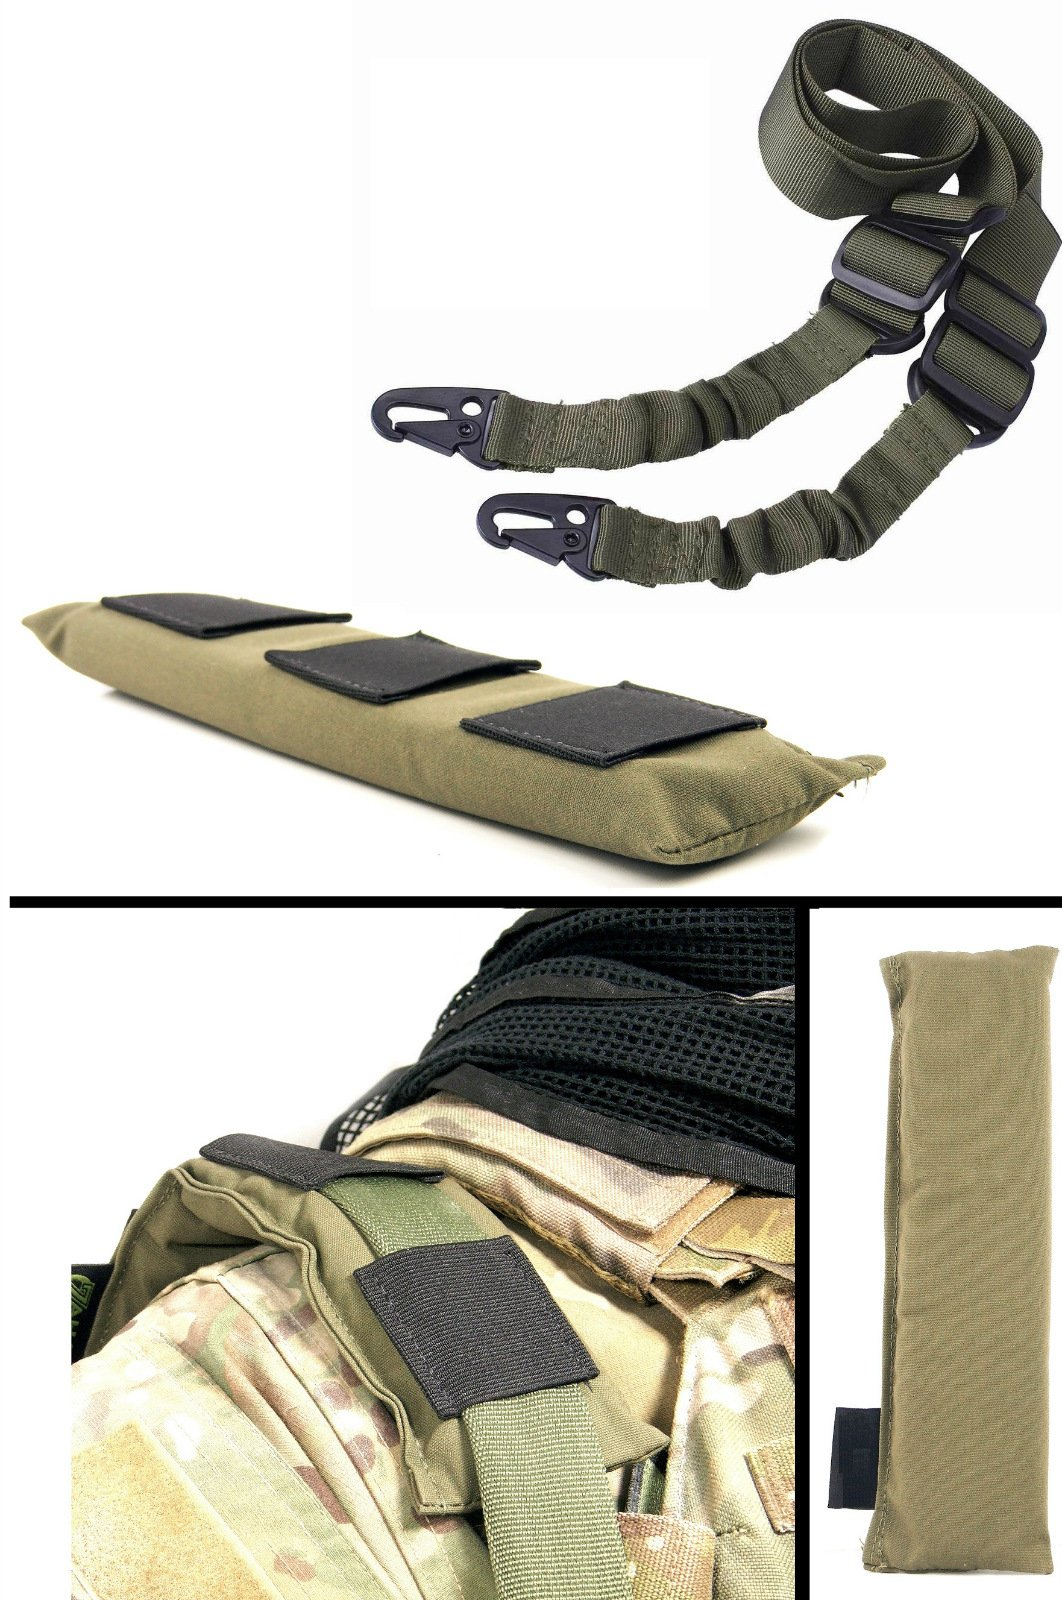 Ultimate Arms Gear IDF Israeli Defense Forces OD Olive Drab Green Mount Shoulder Pad Padded + Two-Point Sling, OD Olive Drab Green For Springfield Armory M1A Garand Tanker M1 Carbine